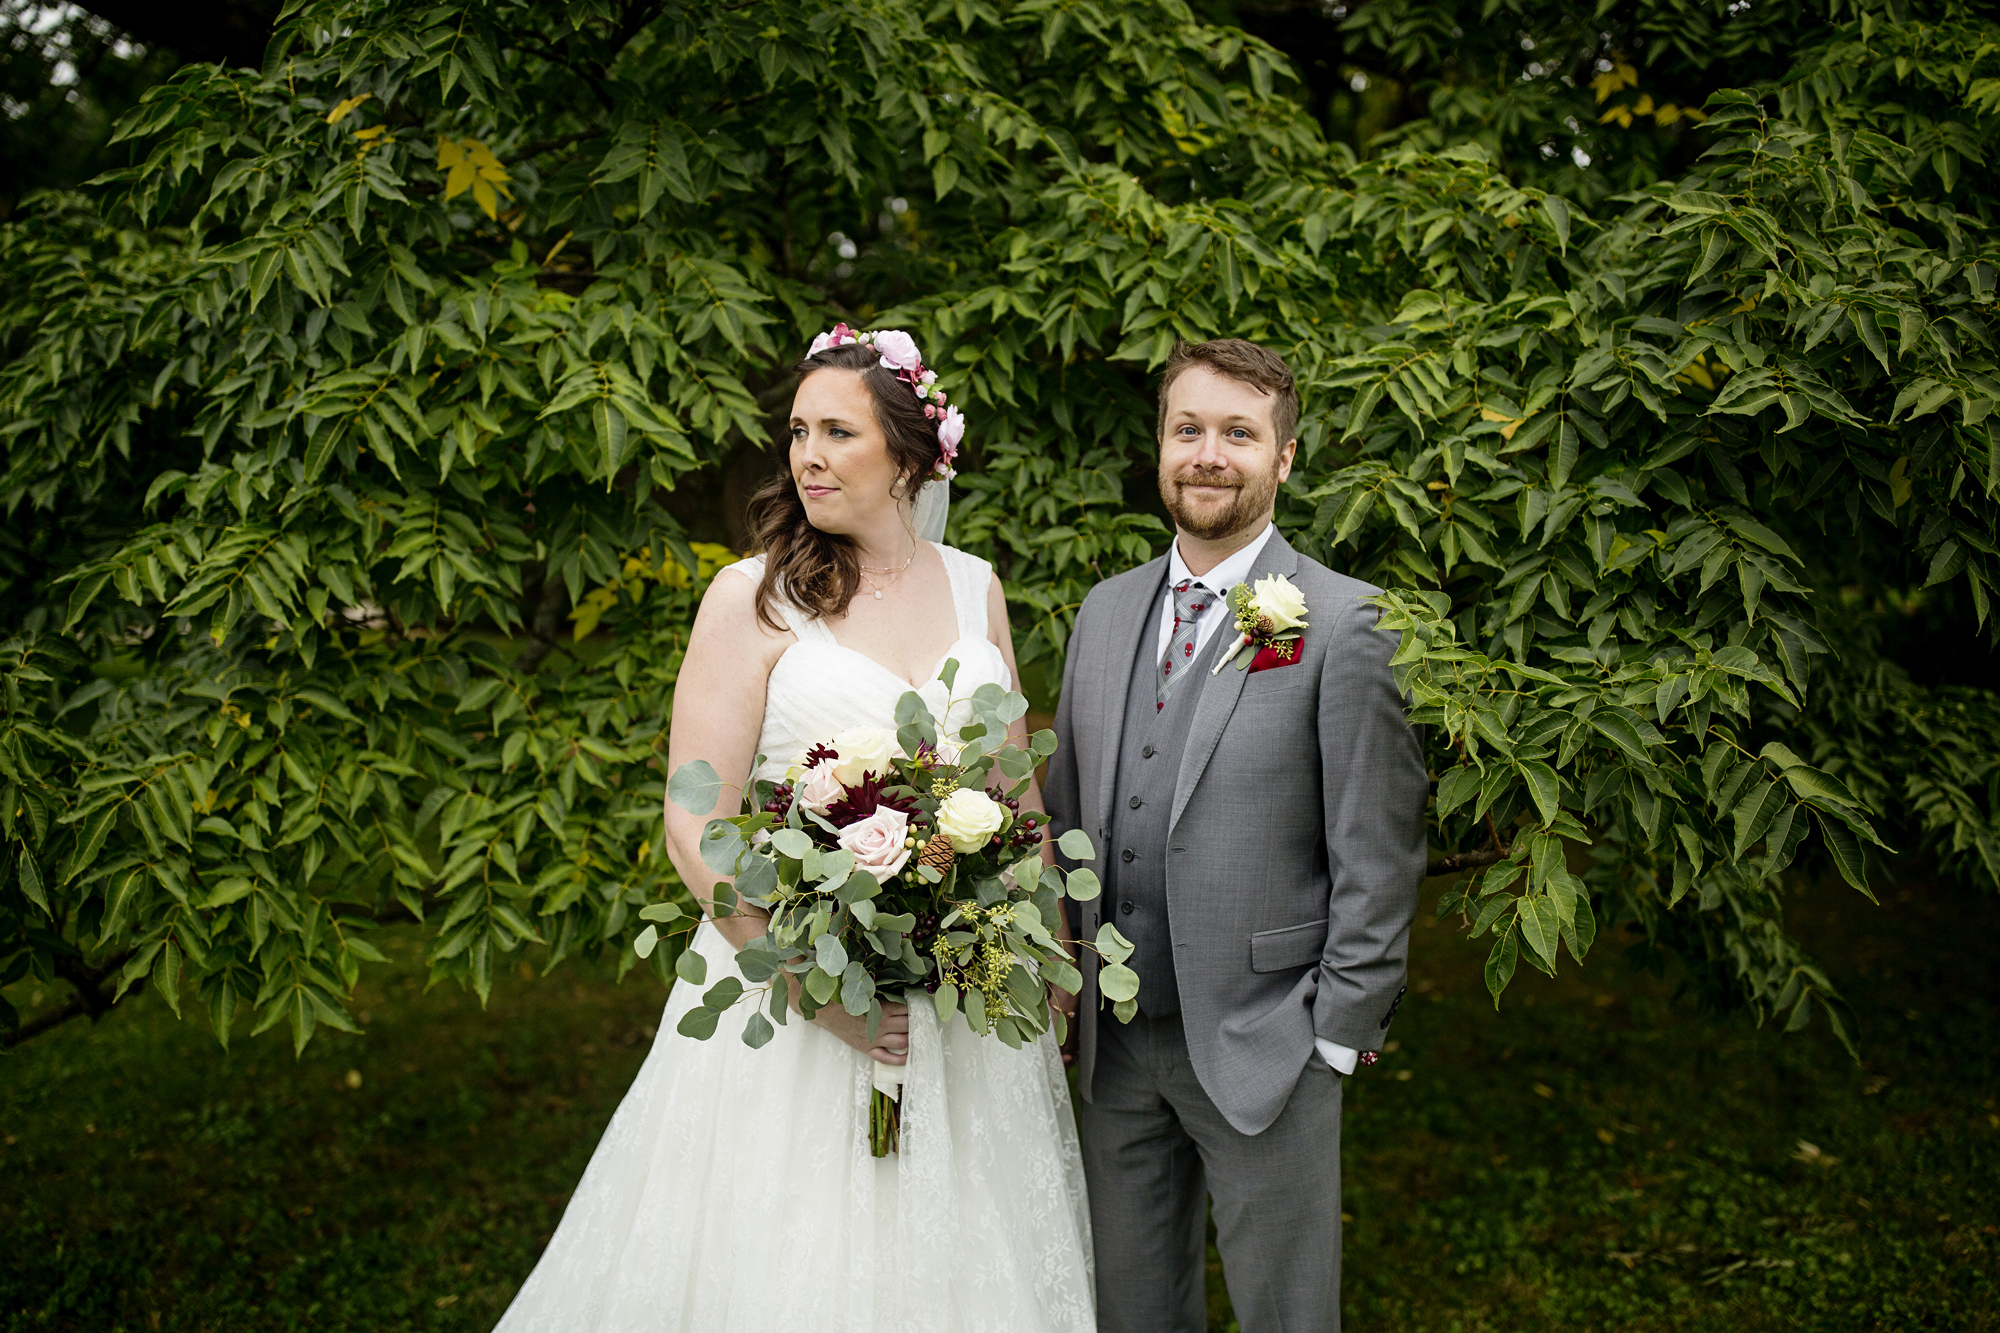 Seriously_Sabrina_Photography_Lisle_Illinois_Morton_Arboretum_Wedding_Day_Gowen90.jpg